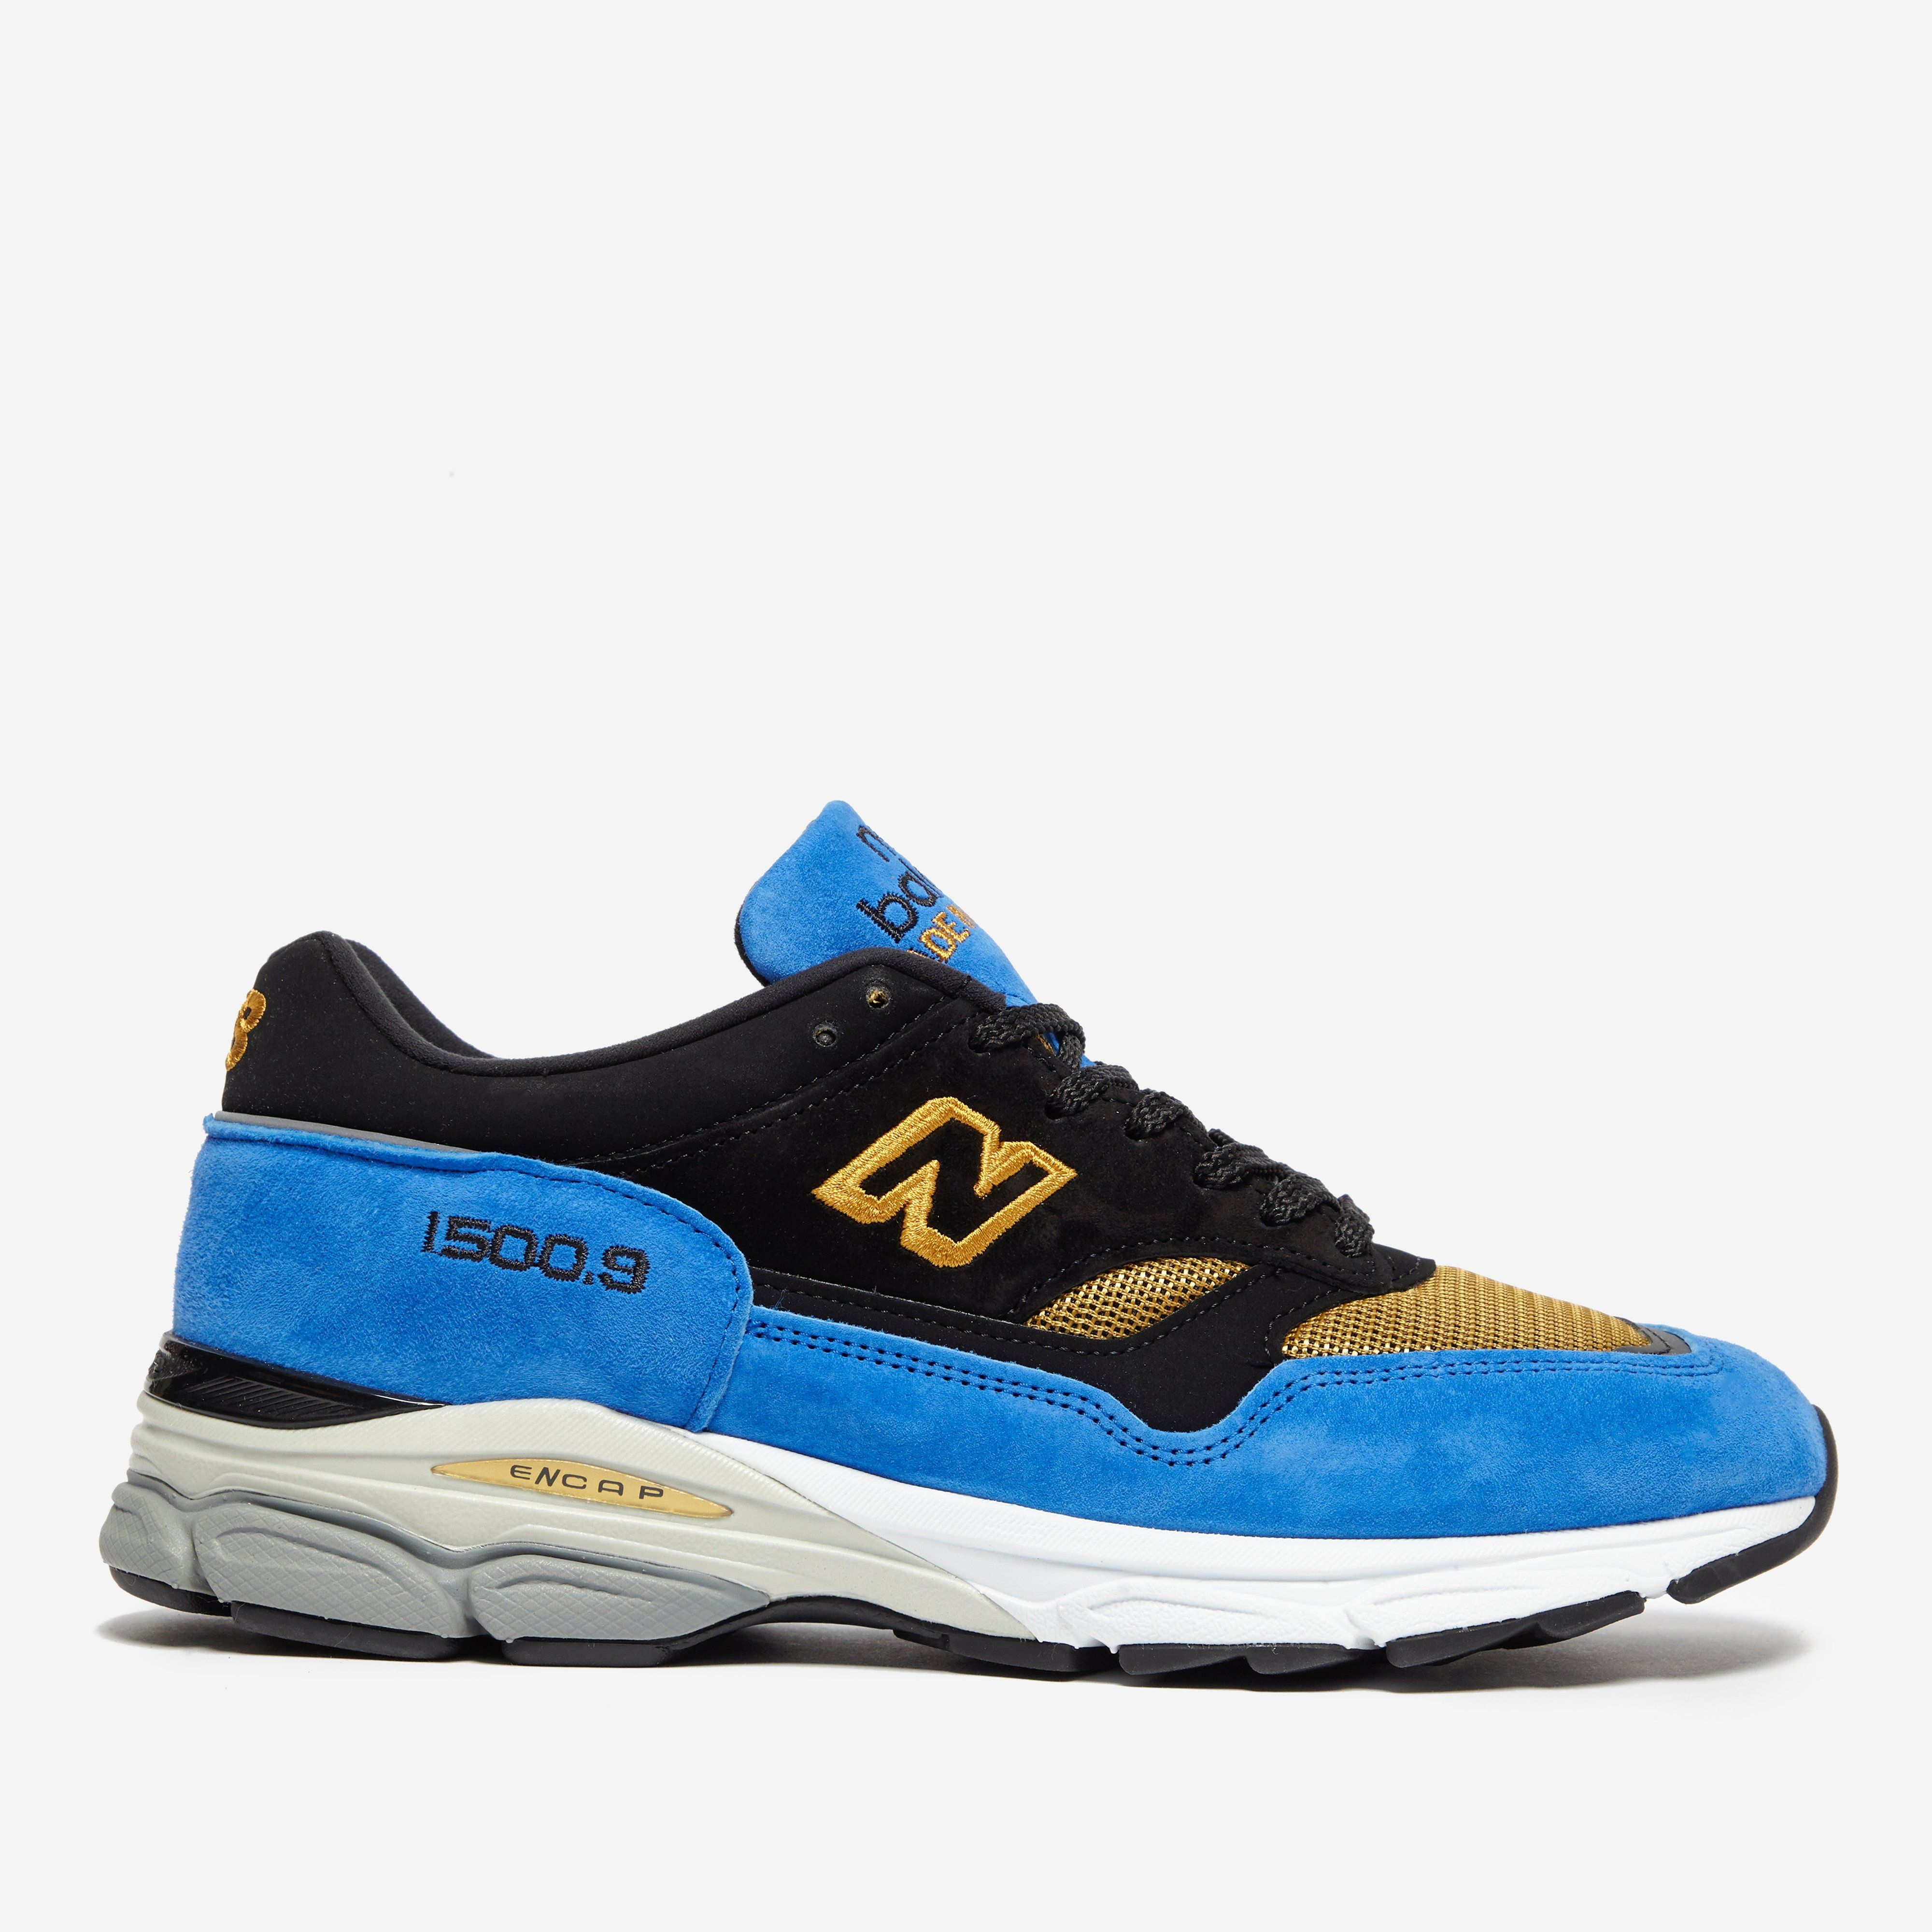 "New Balance M 1500.9 CV ""Made in England"" ""Caviar & Vodka Pack"""